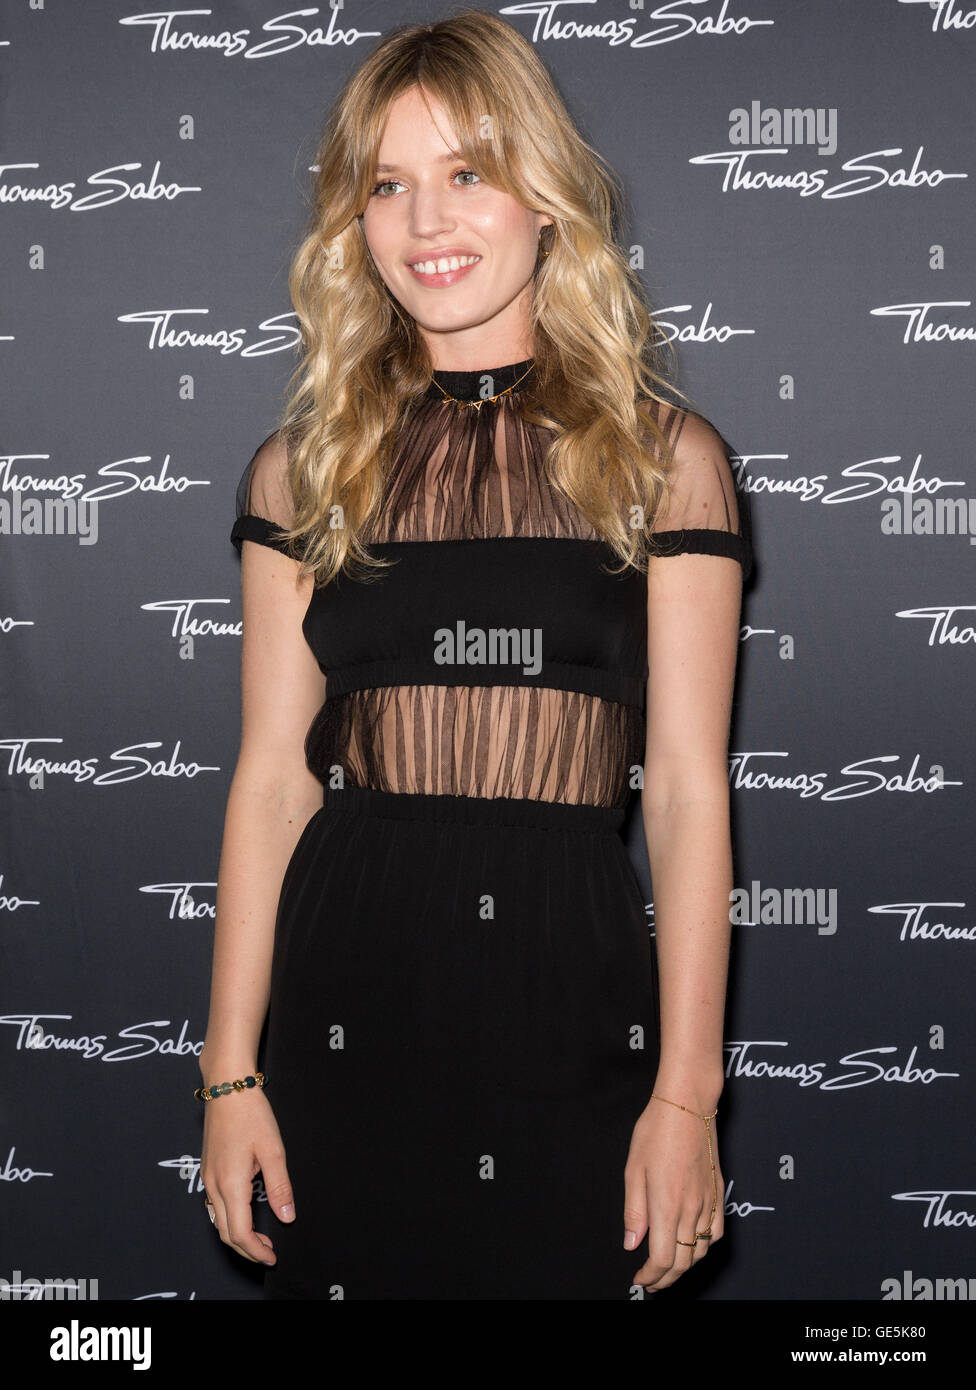 NEW YORK, NY - JULY 21, 2016: Georgia May Jagger attends the Thomas Sabo New Collection Celebration at the Sky Room - Stock Image